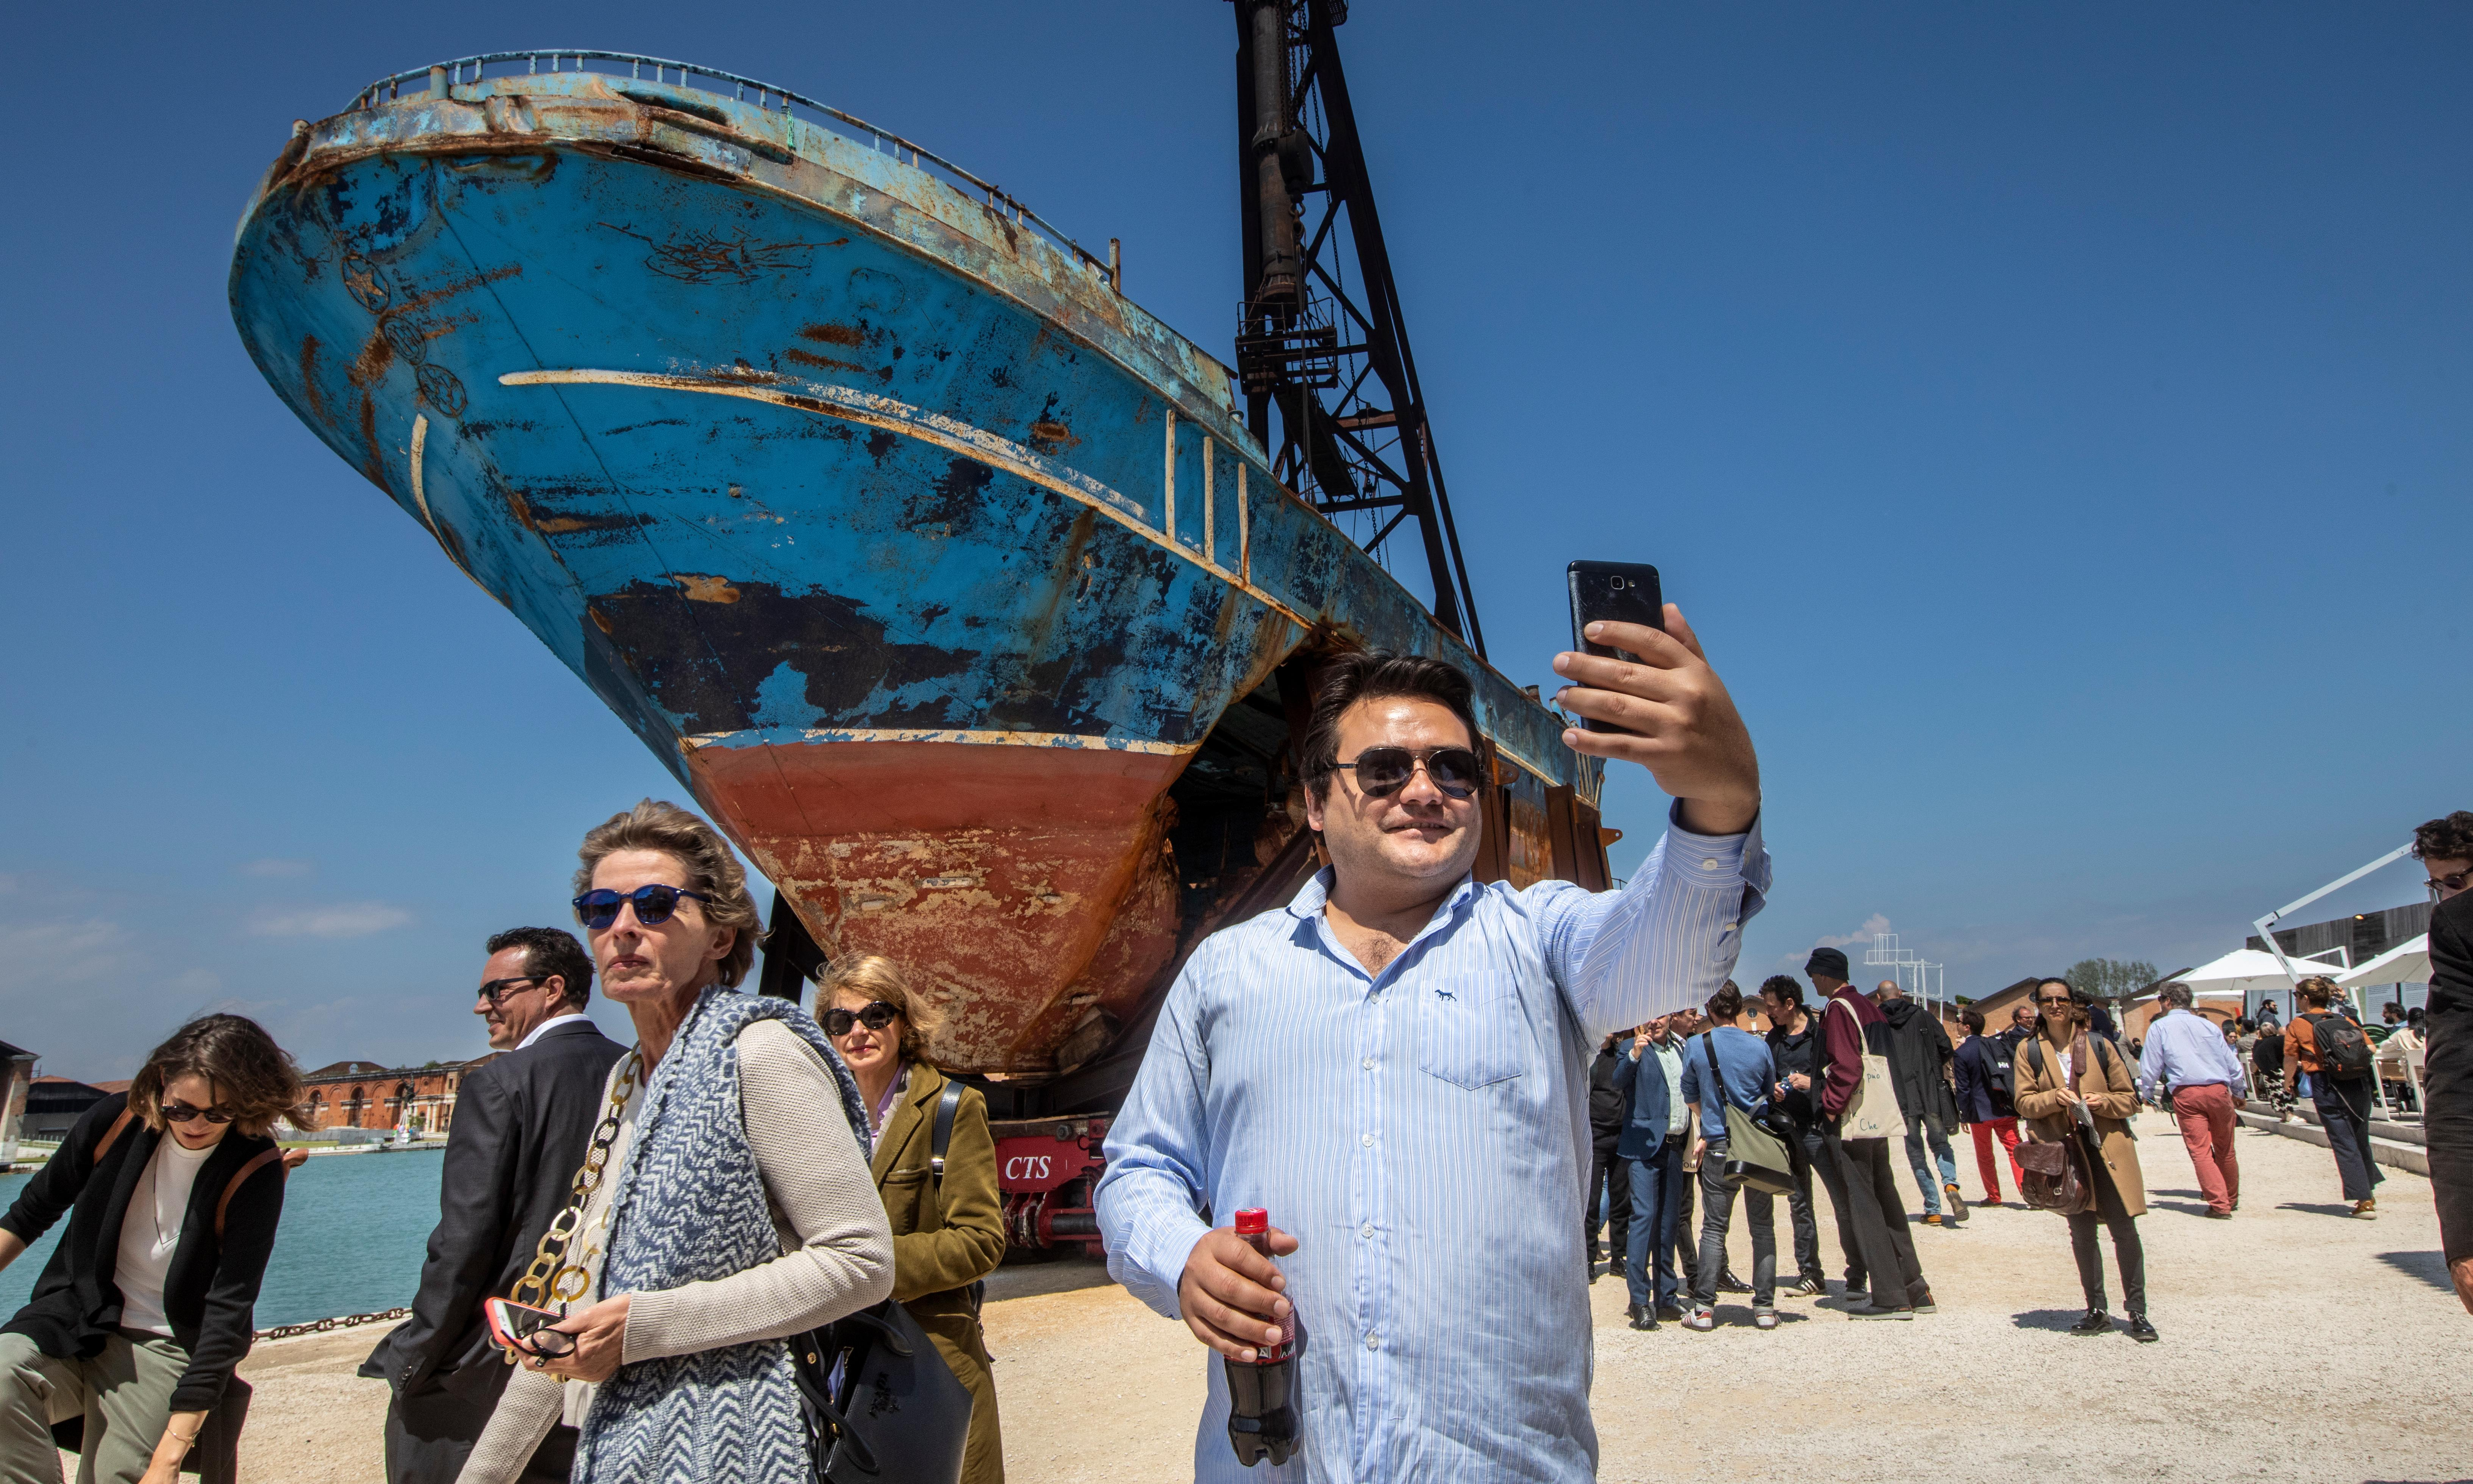 The Guardian view on the Venice Biennale's migrant boat: pushing the limits of art